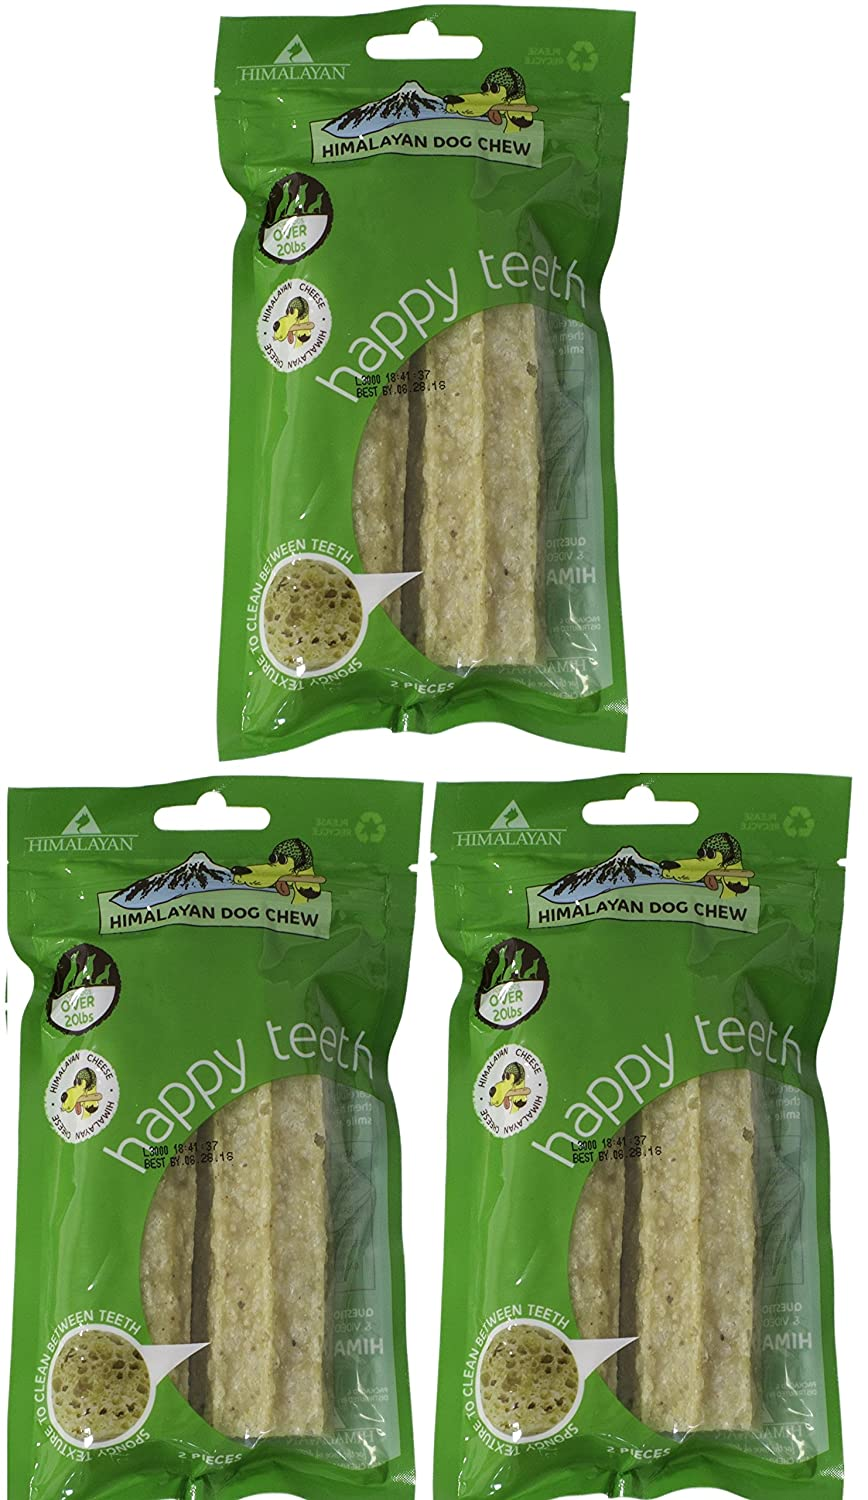 3 Bags Himalayan Happy Teeth Dog Chew, Cheese, Large, Pack of 3